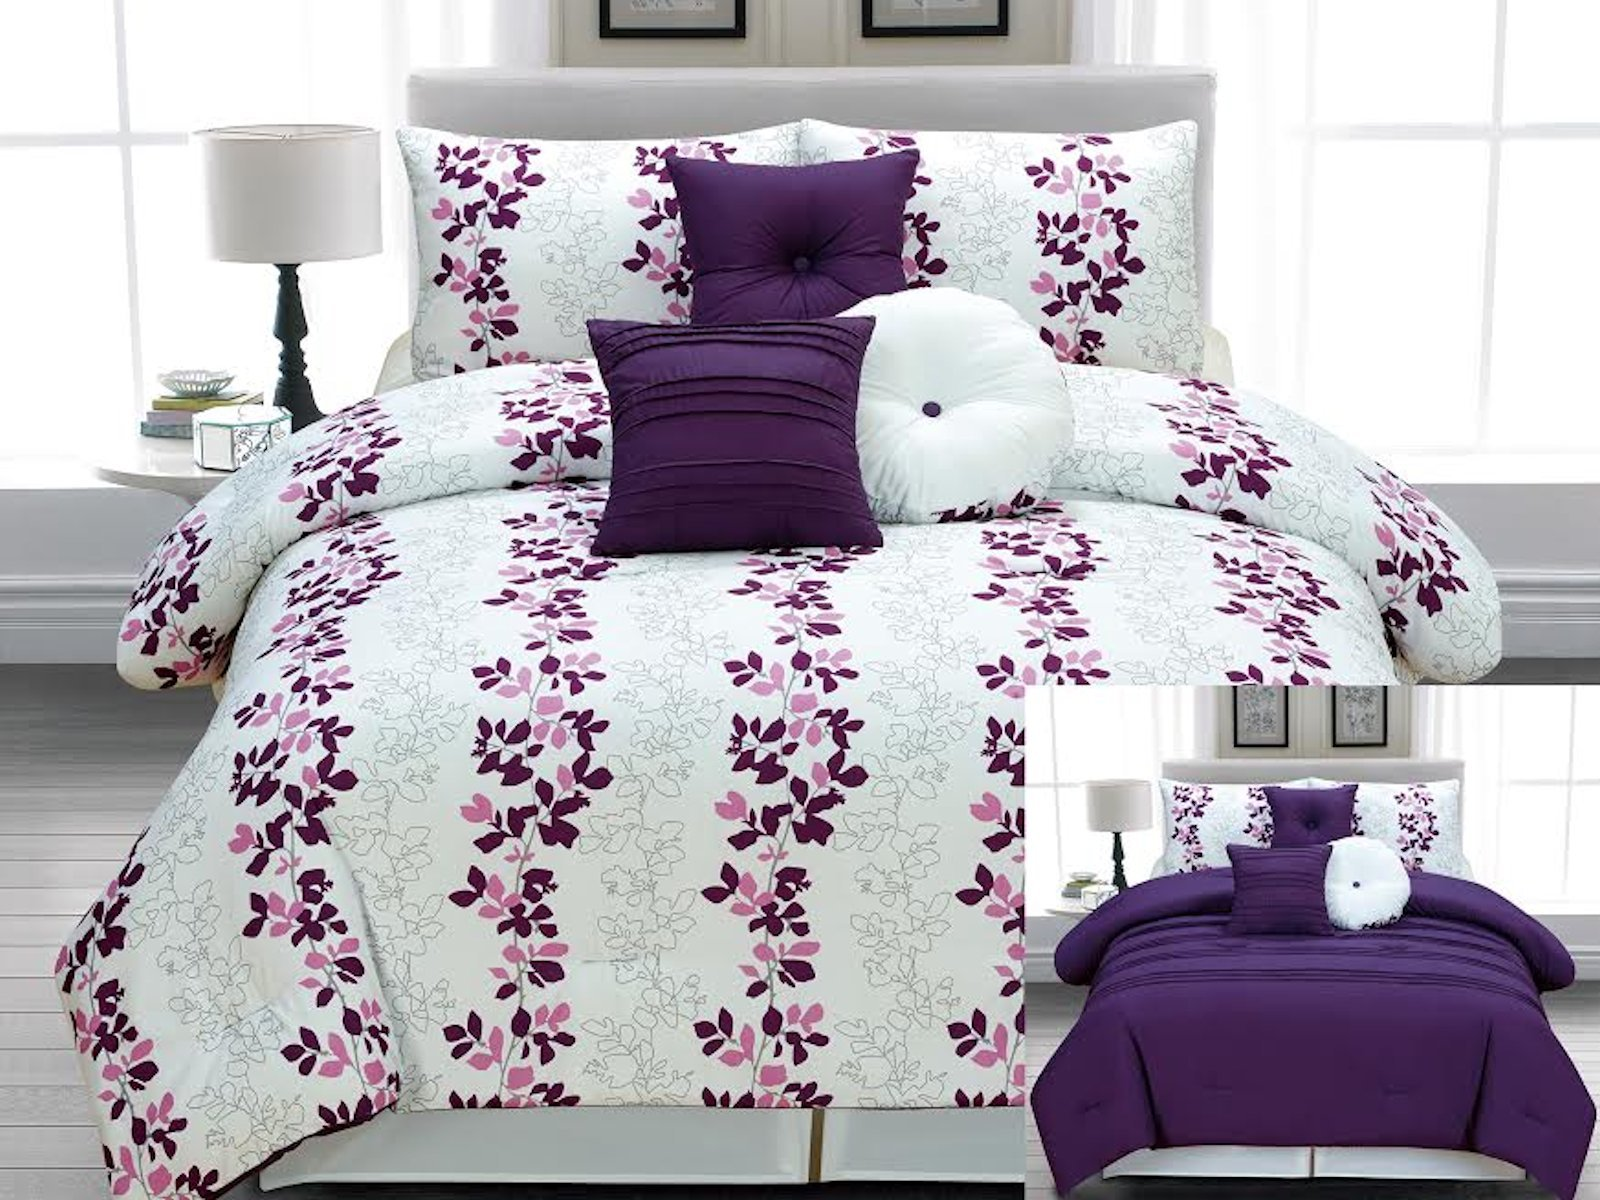 Full Size Purple Comforter Sets | Purple Velvet Comforter Sets Queen | Purple Comforter Sets